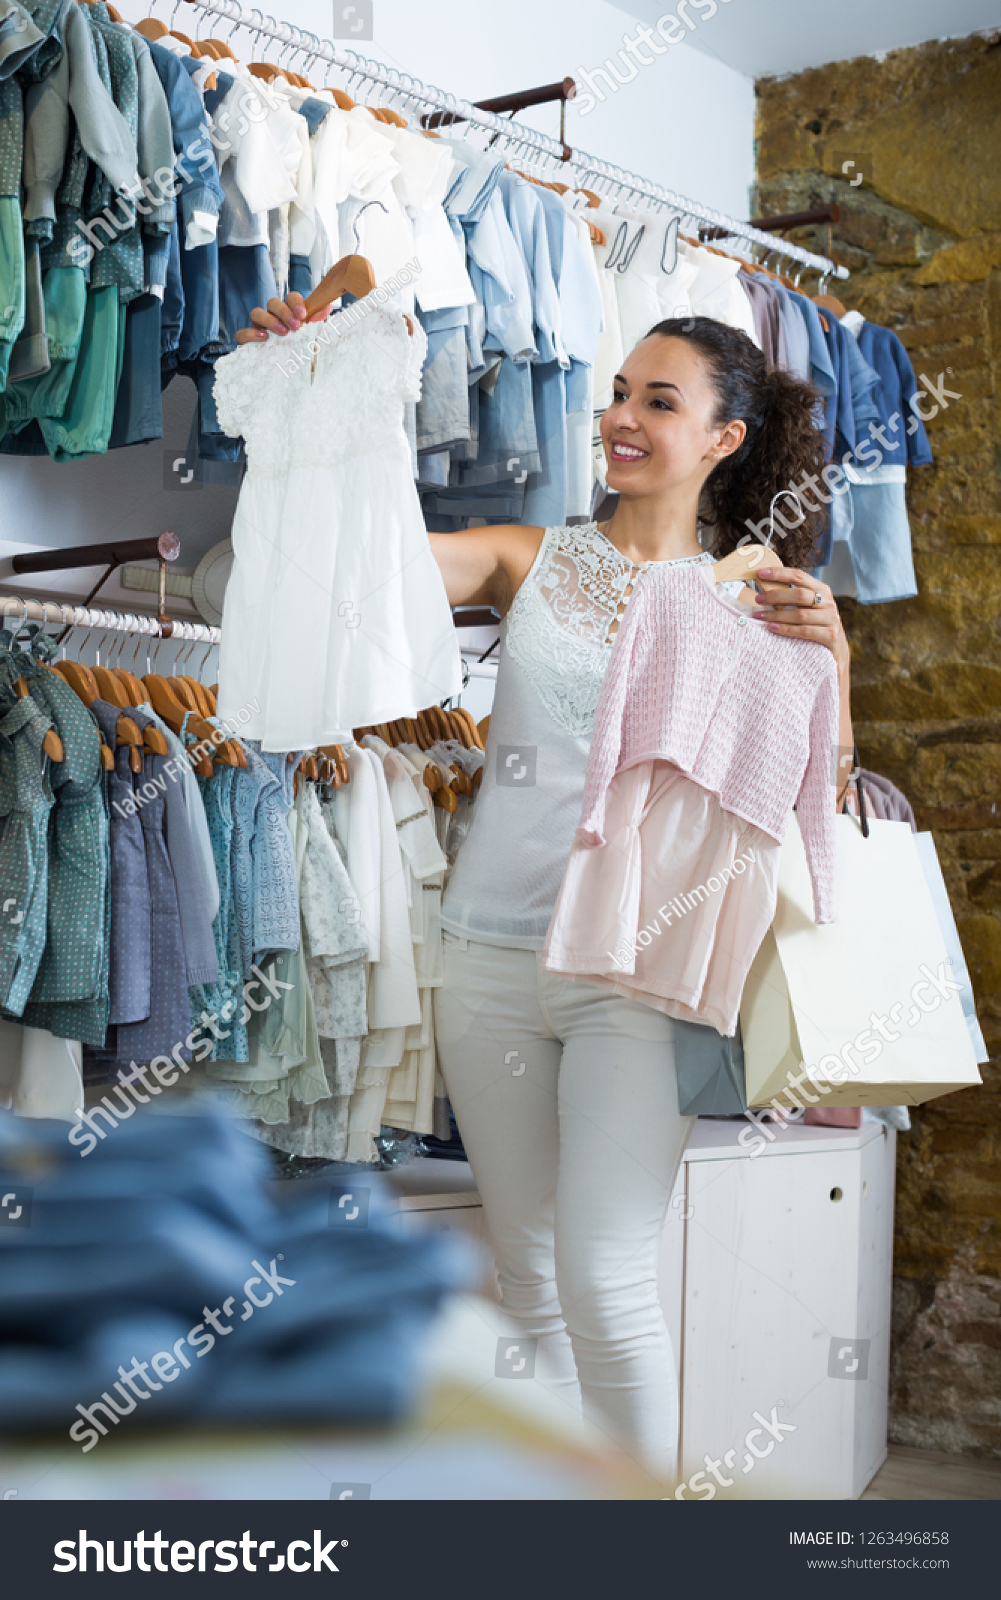 45552a695e Young cheerful woman customer holding baby dress in kids apparel boutique